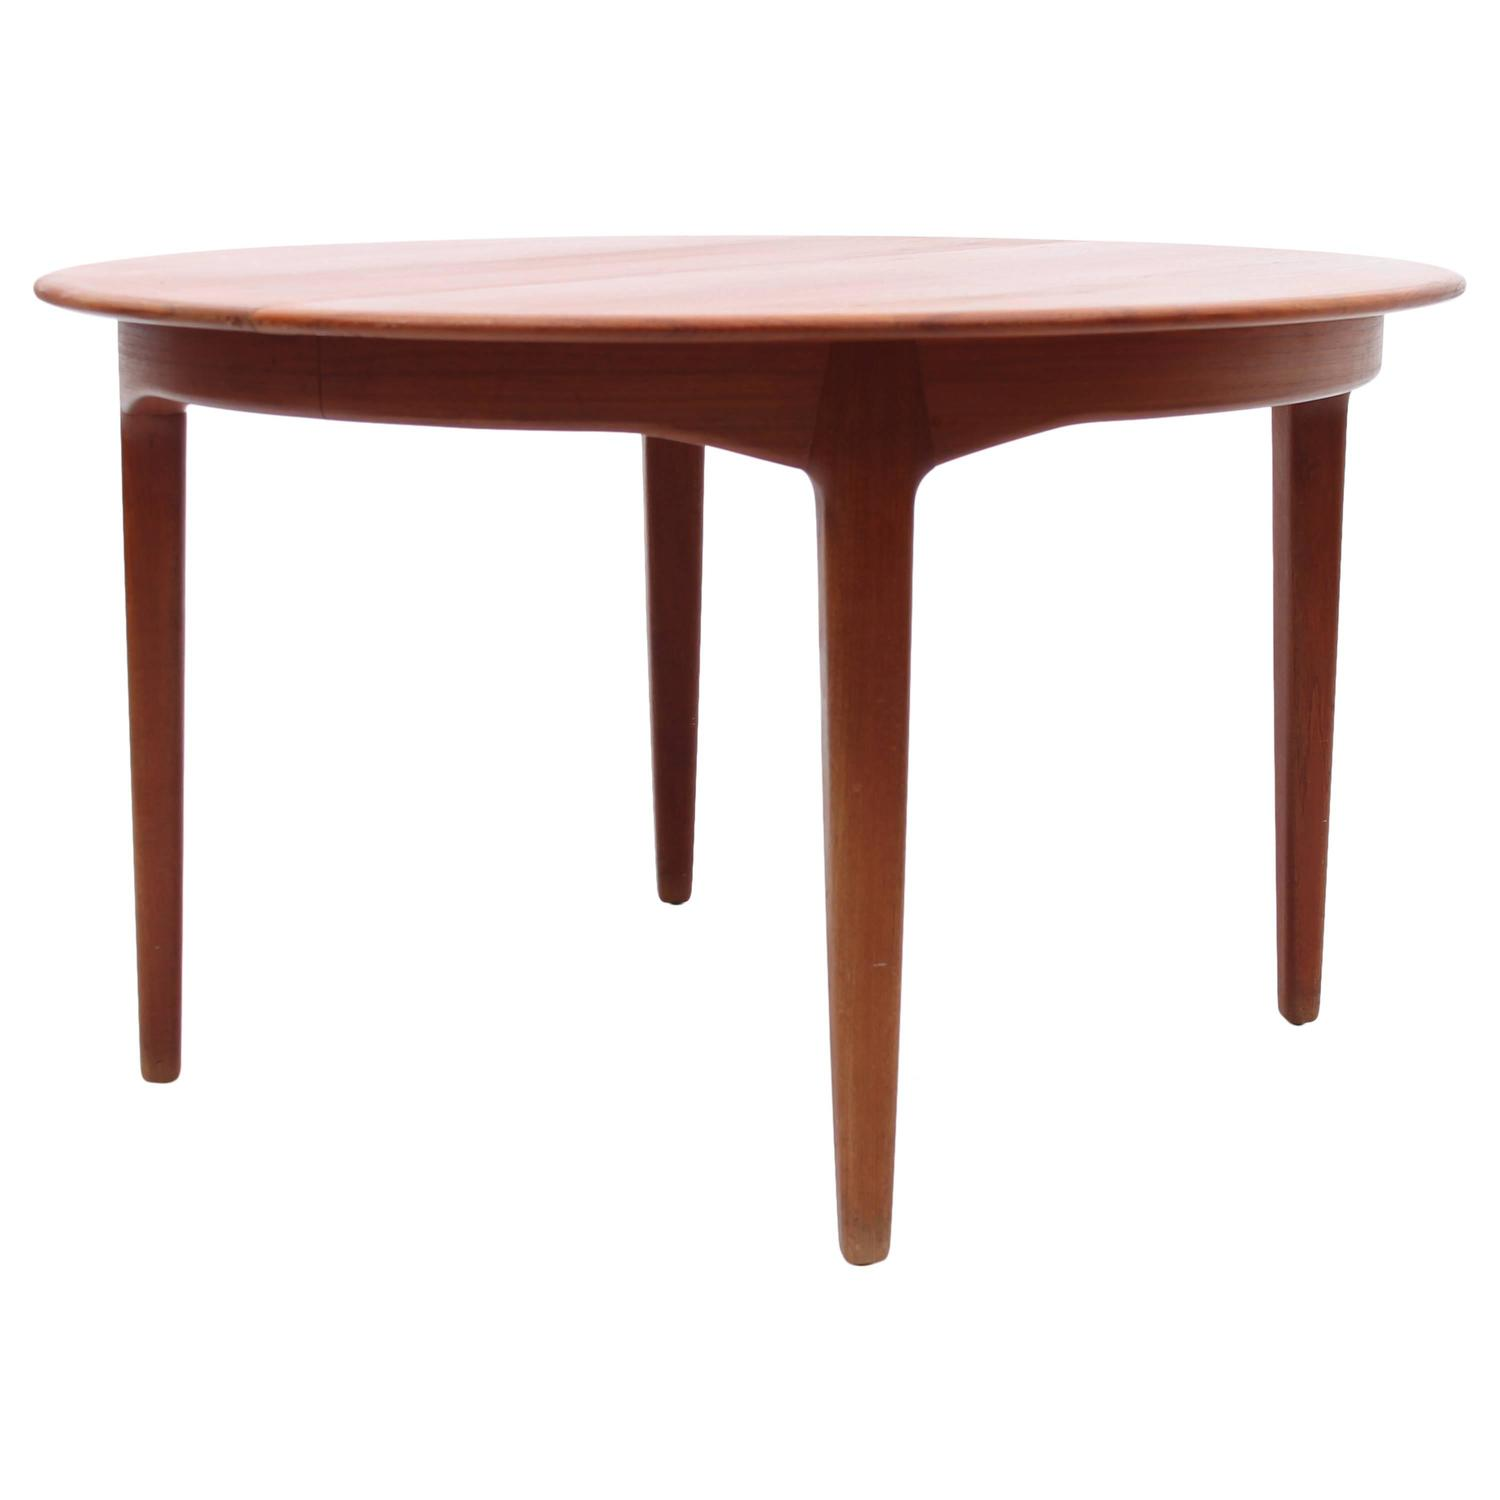 Danish Mid Century Teak Round Dining Table By Henning Kjaernulf 1962